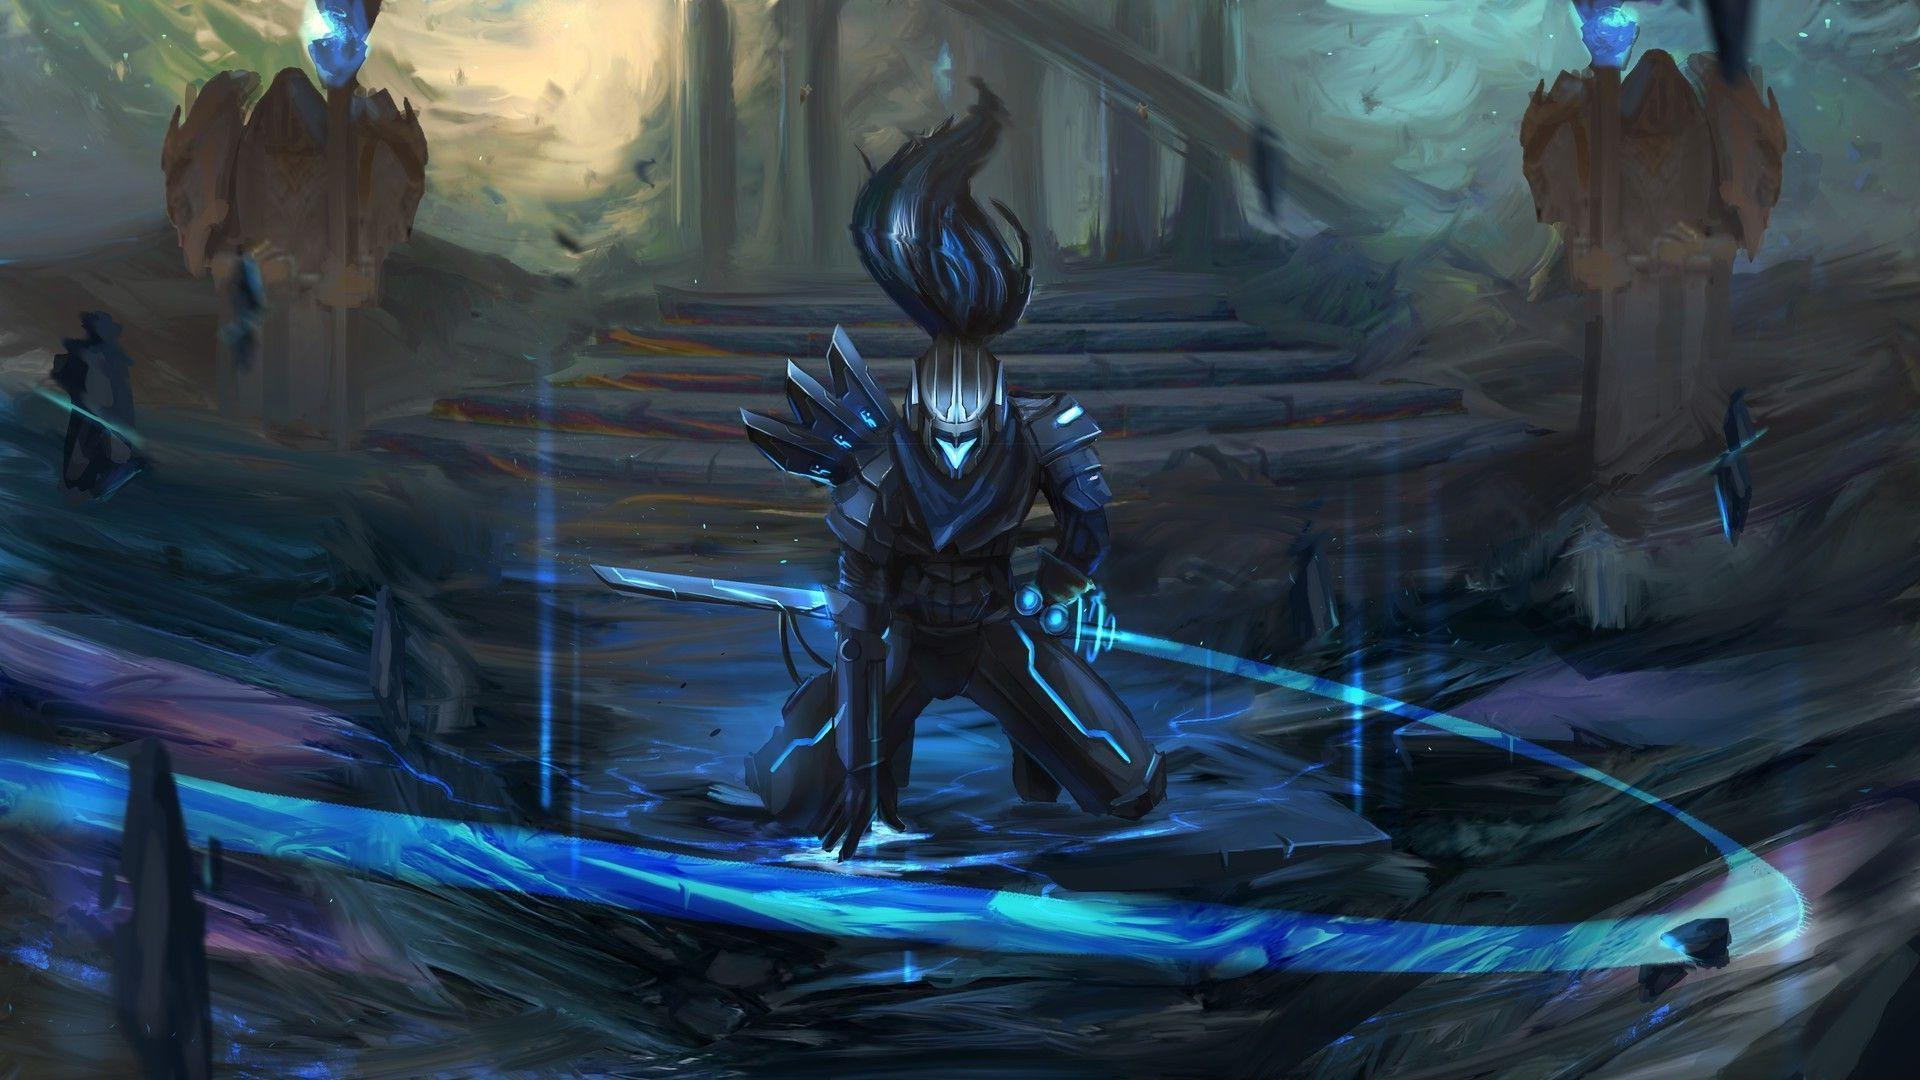 fantasy art league of legends yasuo league of legends